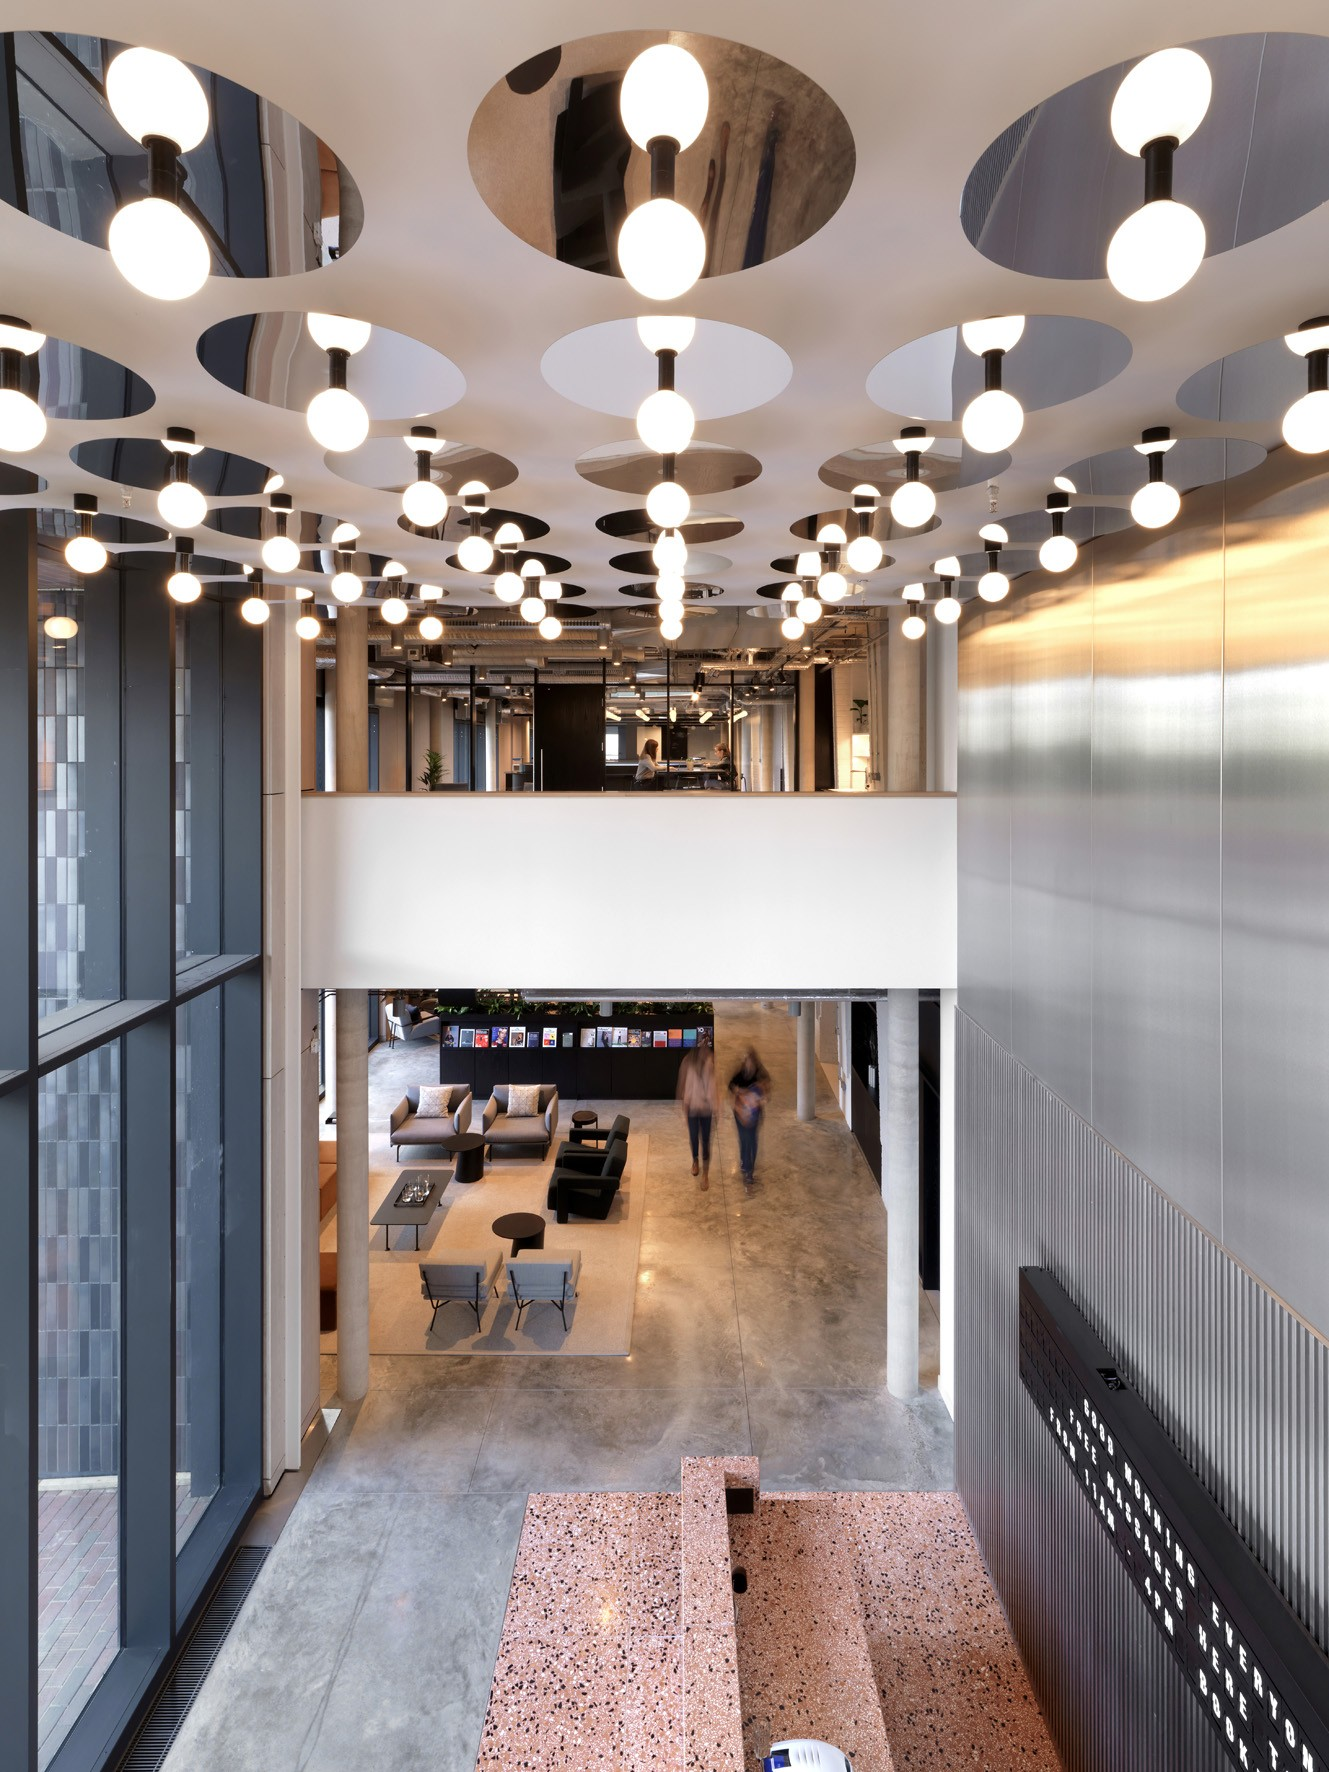 Studio Of Design: Tintagel House Co-working Space, London